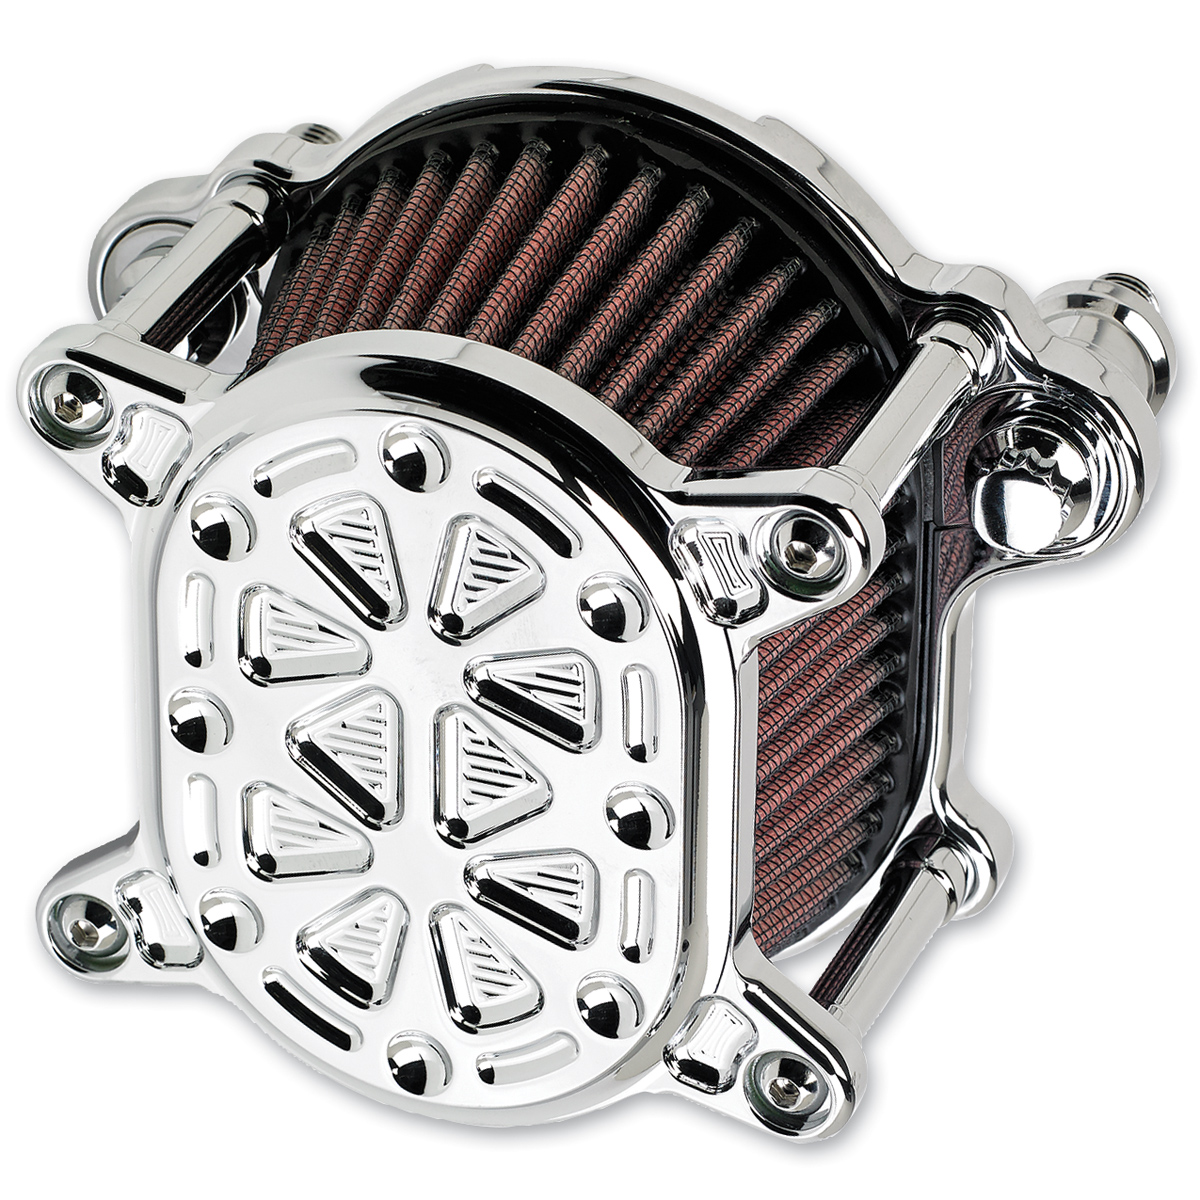 Joker Machine Omega Air Cleaner Techno Chrome